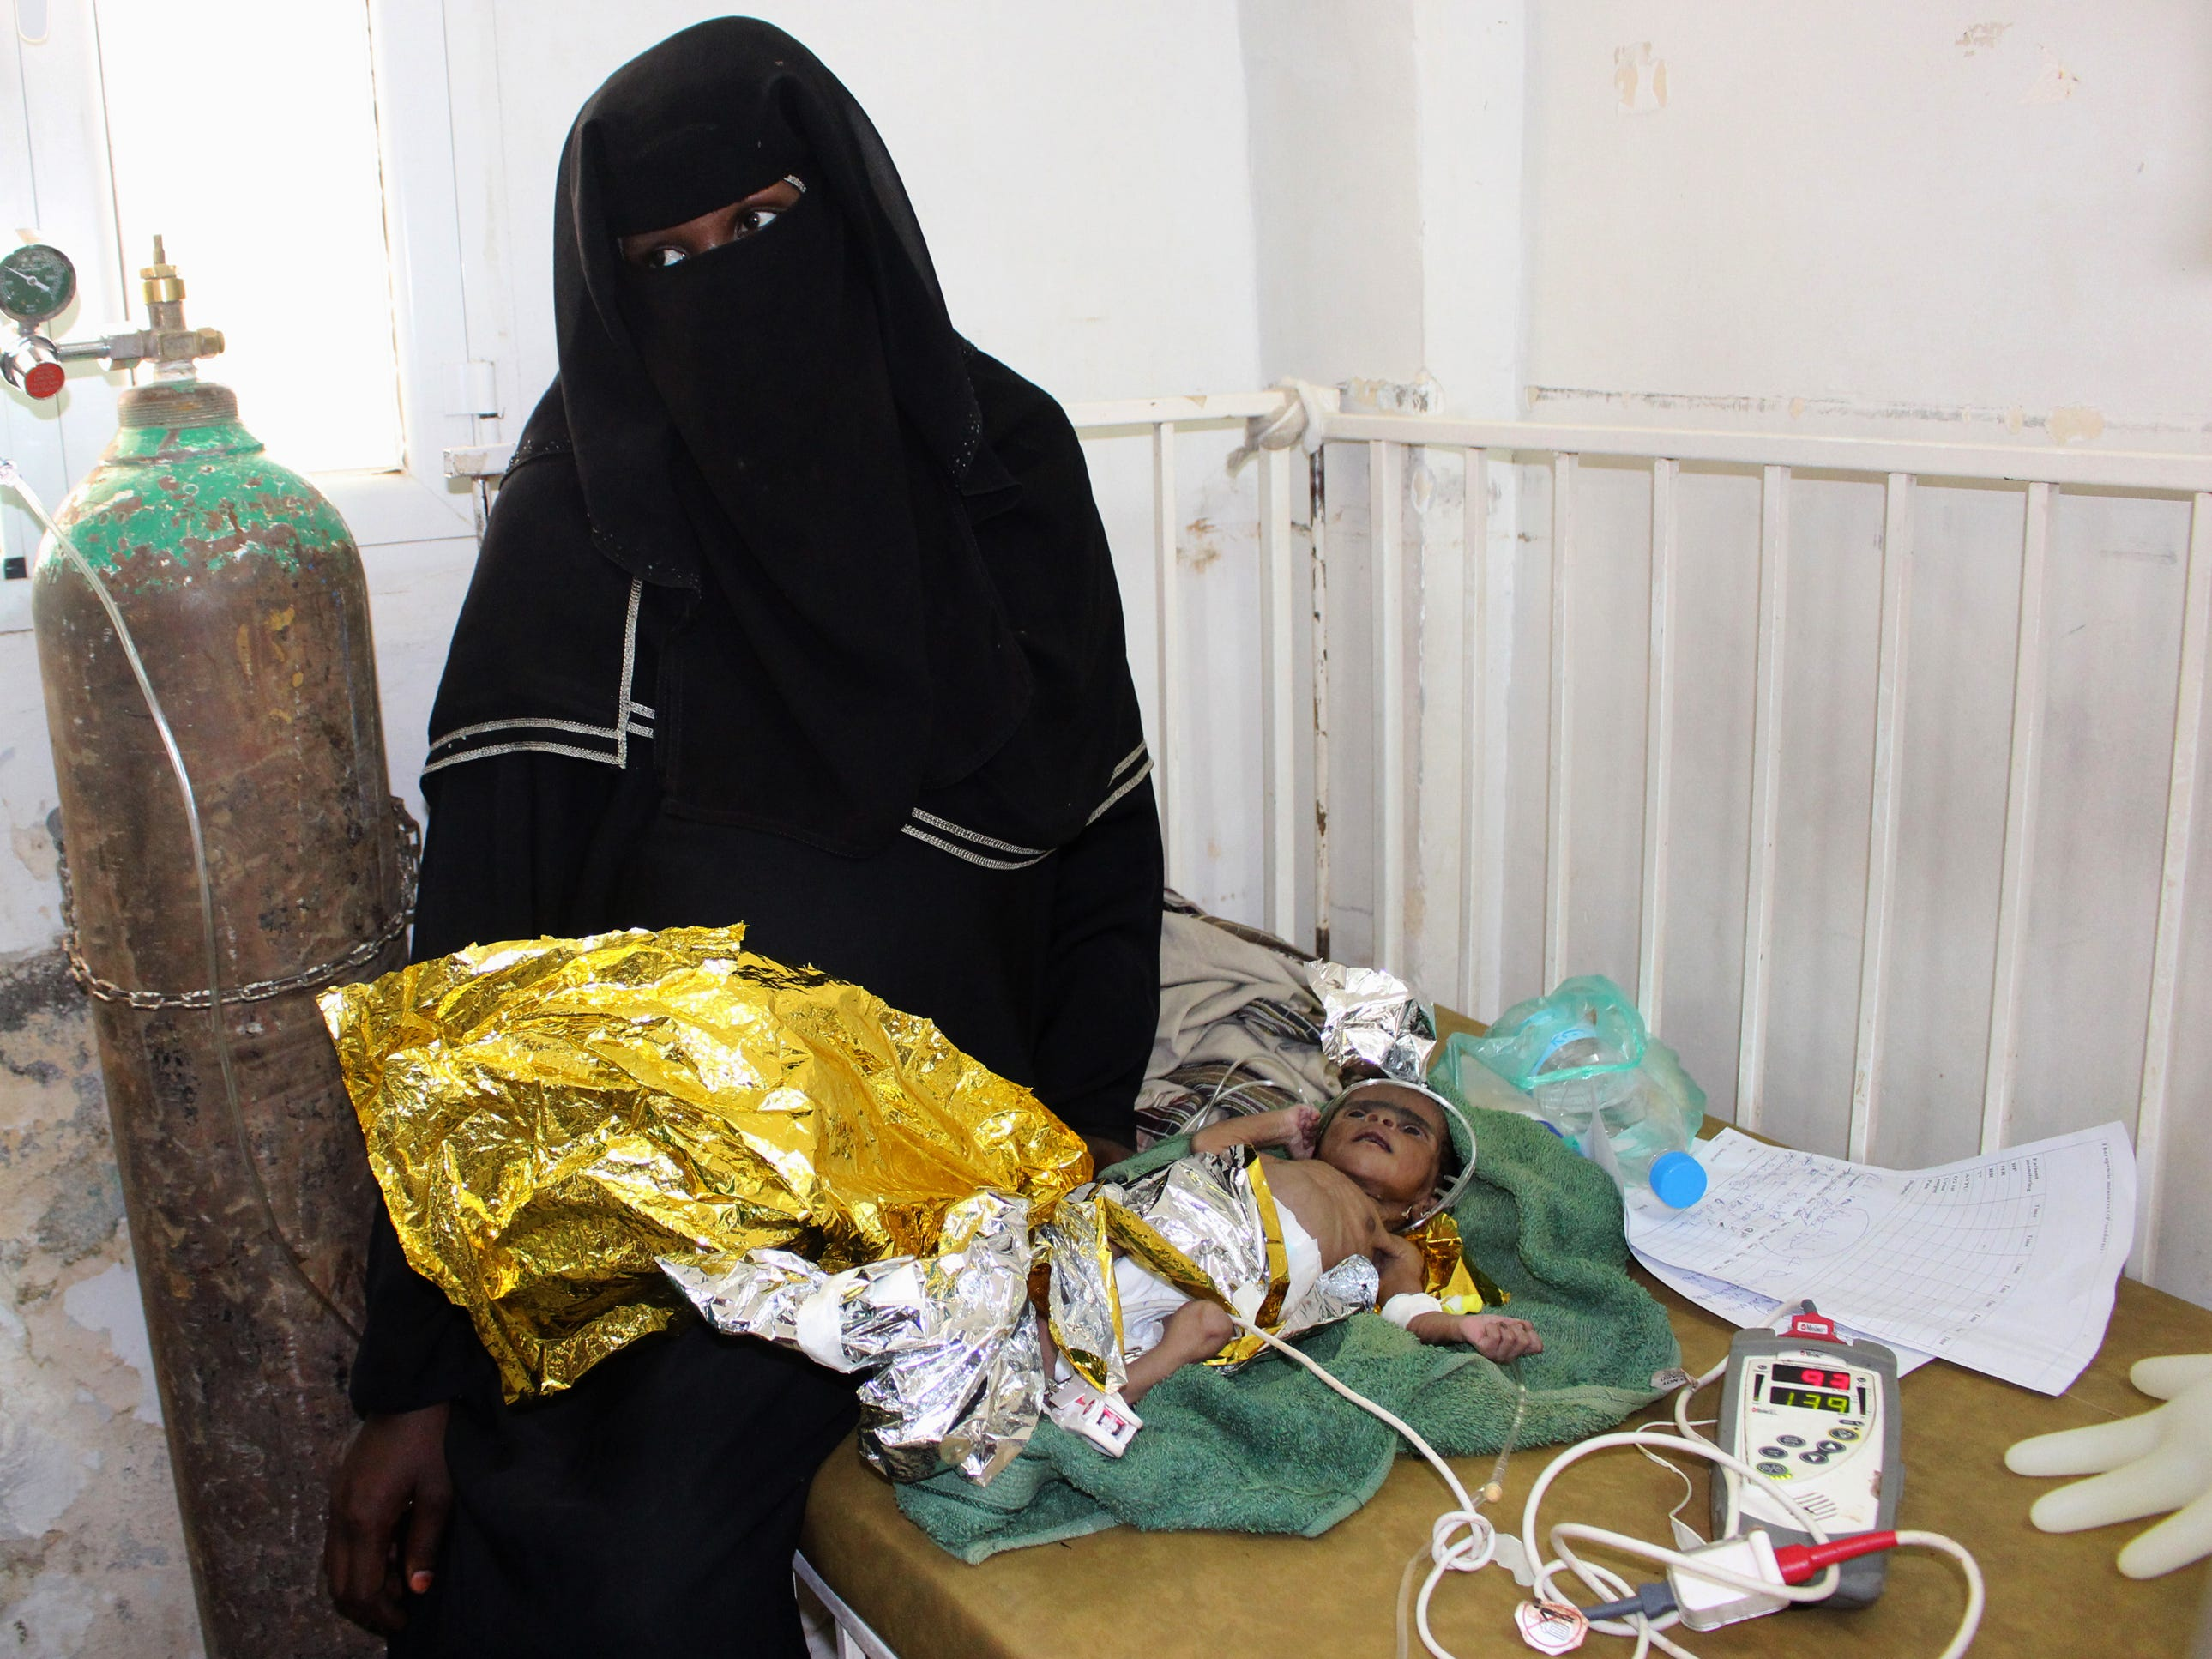 A Yemeni newborn girl, suffering from severe malnutrition, receives care at a hospital in Yemen's northwestern Hajjah province, on Oct. 31, 2018.